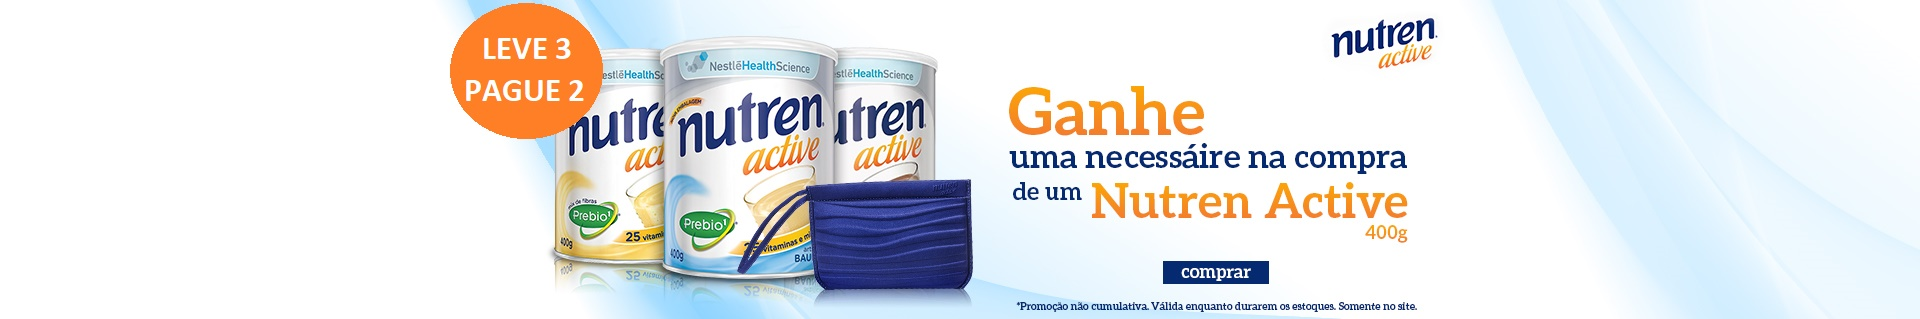 Home | Nutren Active Leve 3 Pague 2